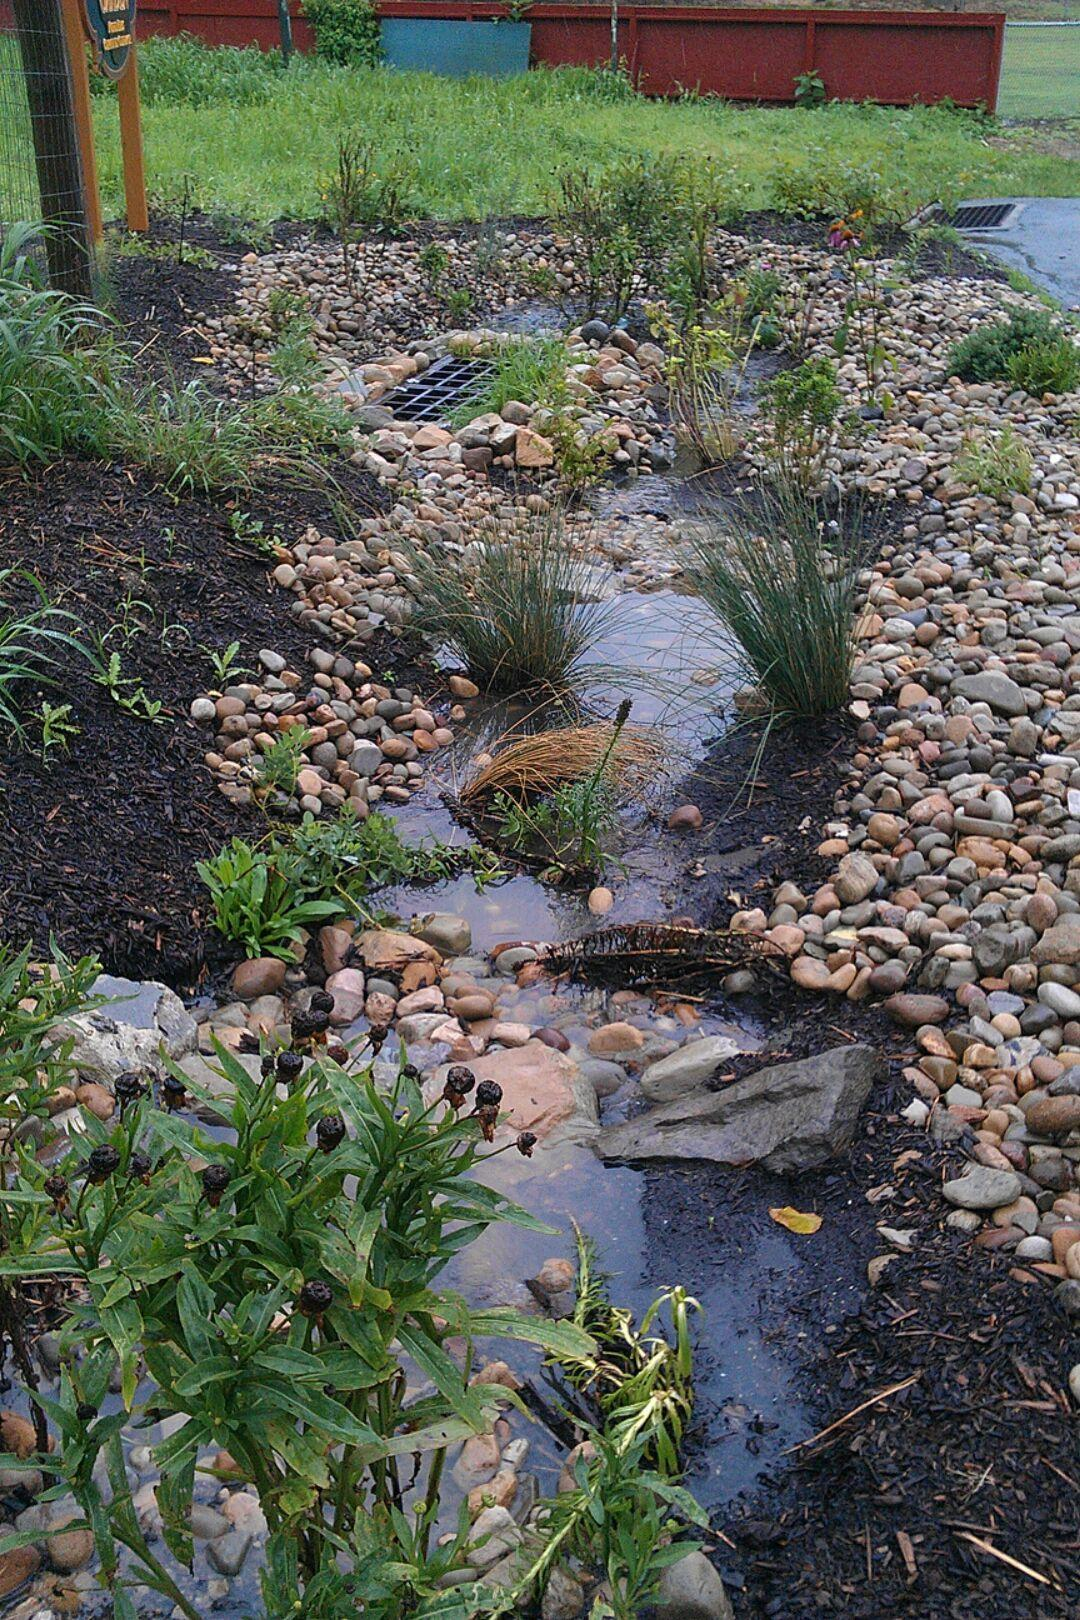 A bioswale for rain water management in Pittsburgh.